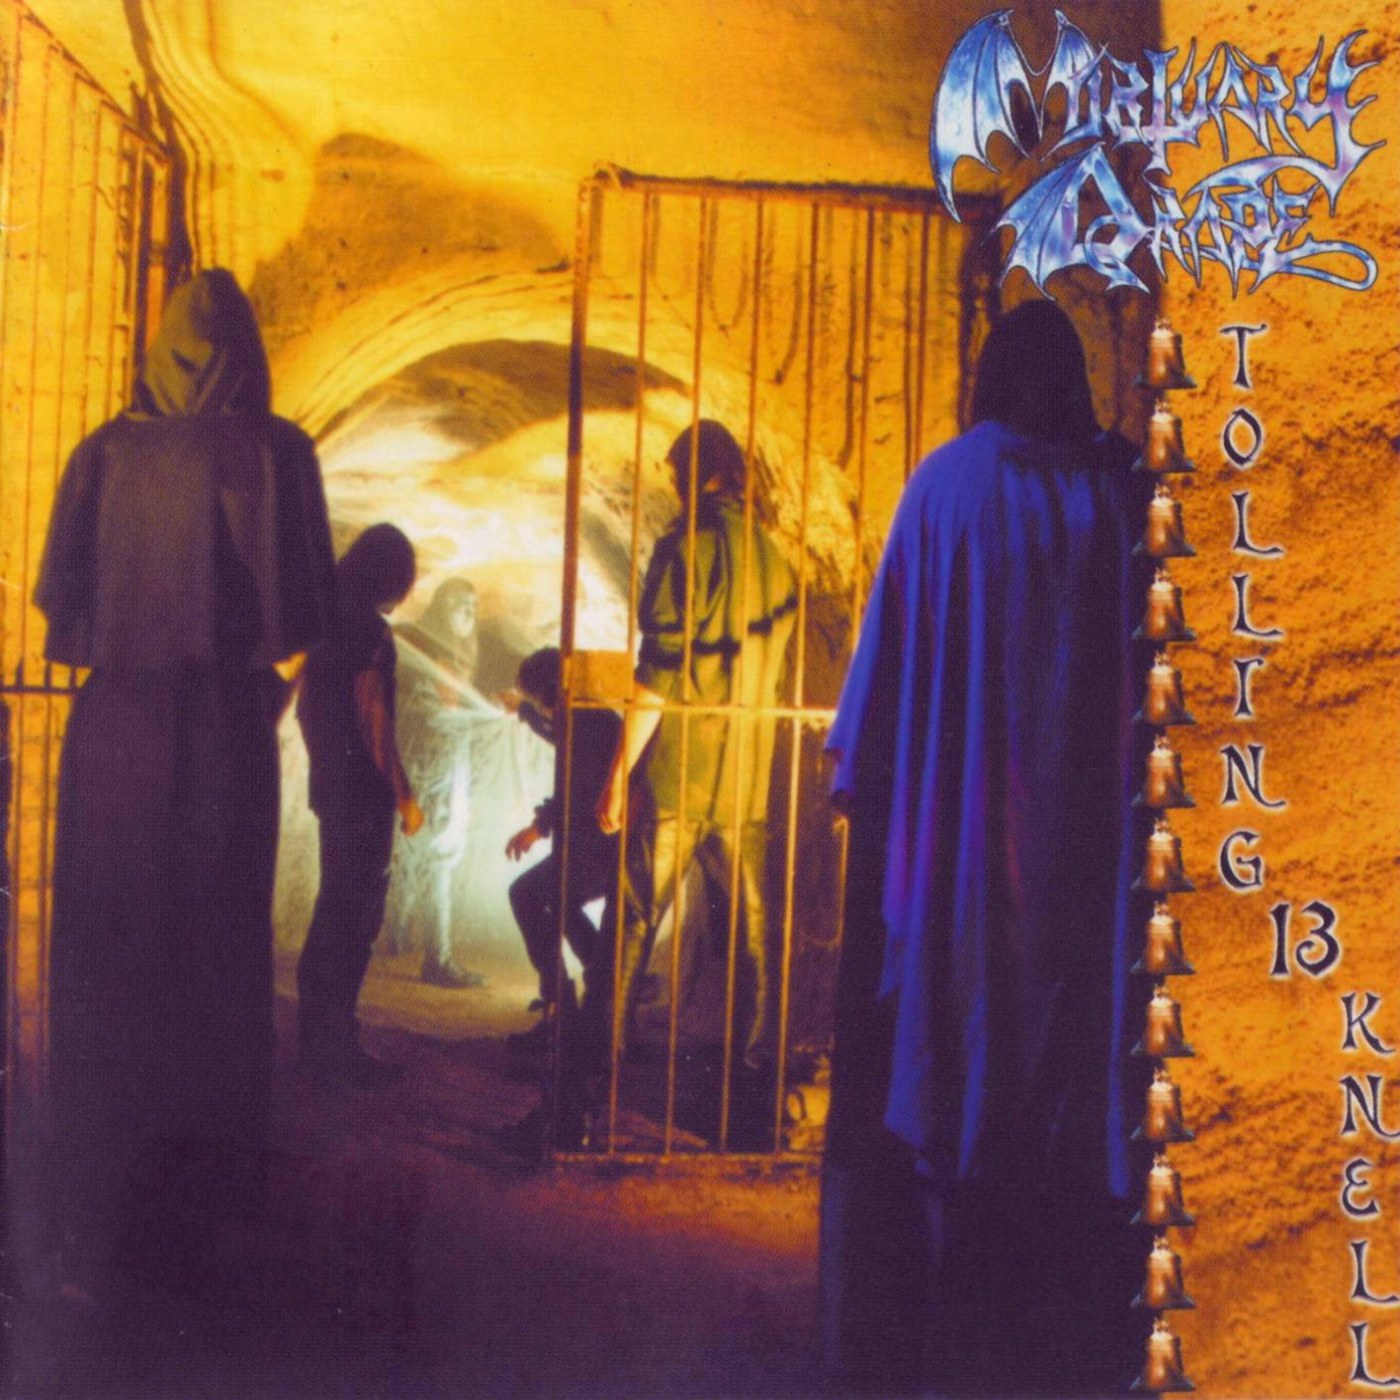 Review for Mortuary Drape - Tolling 13 Knell